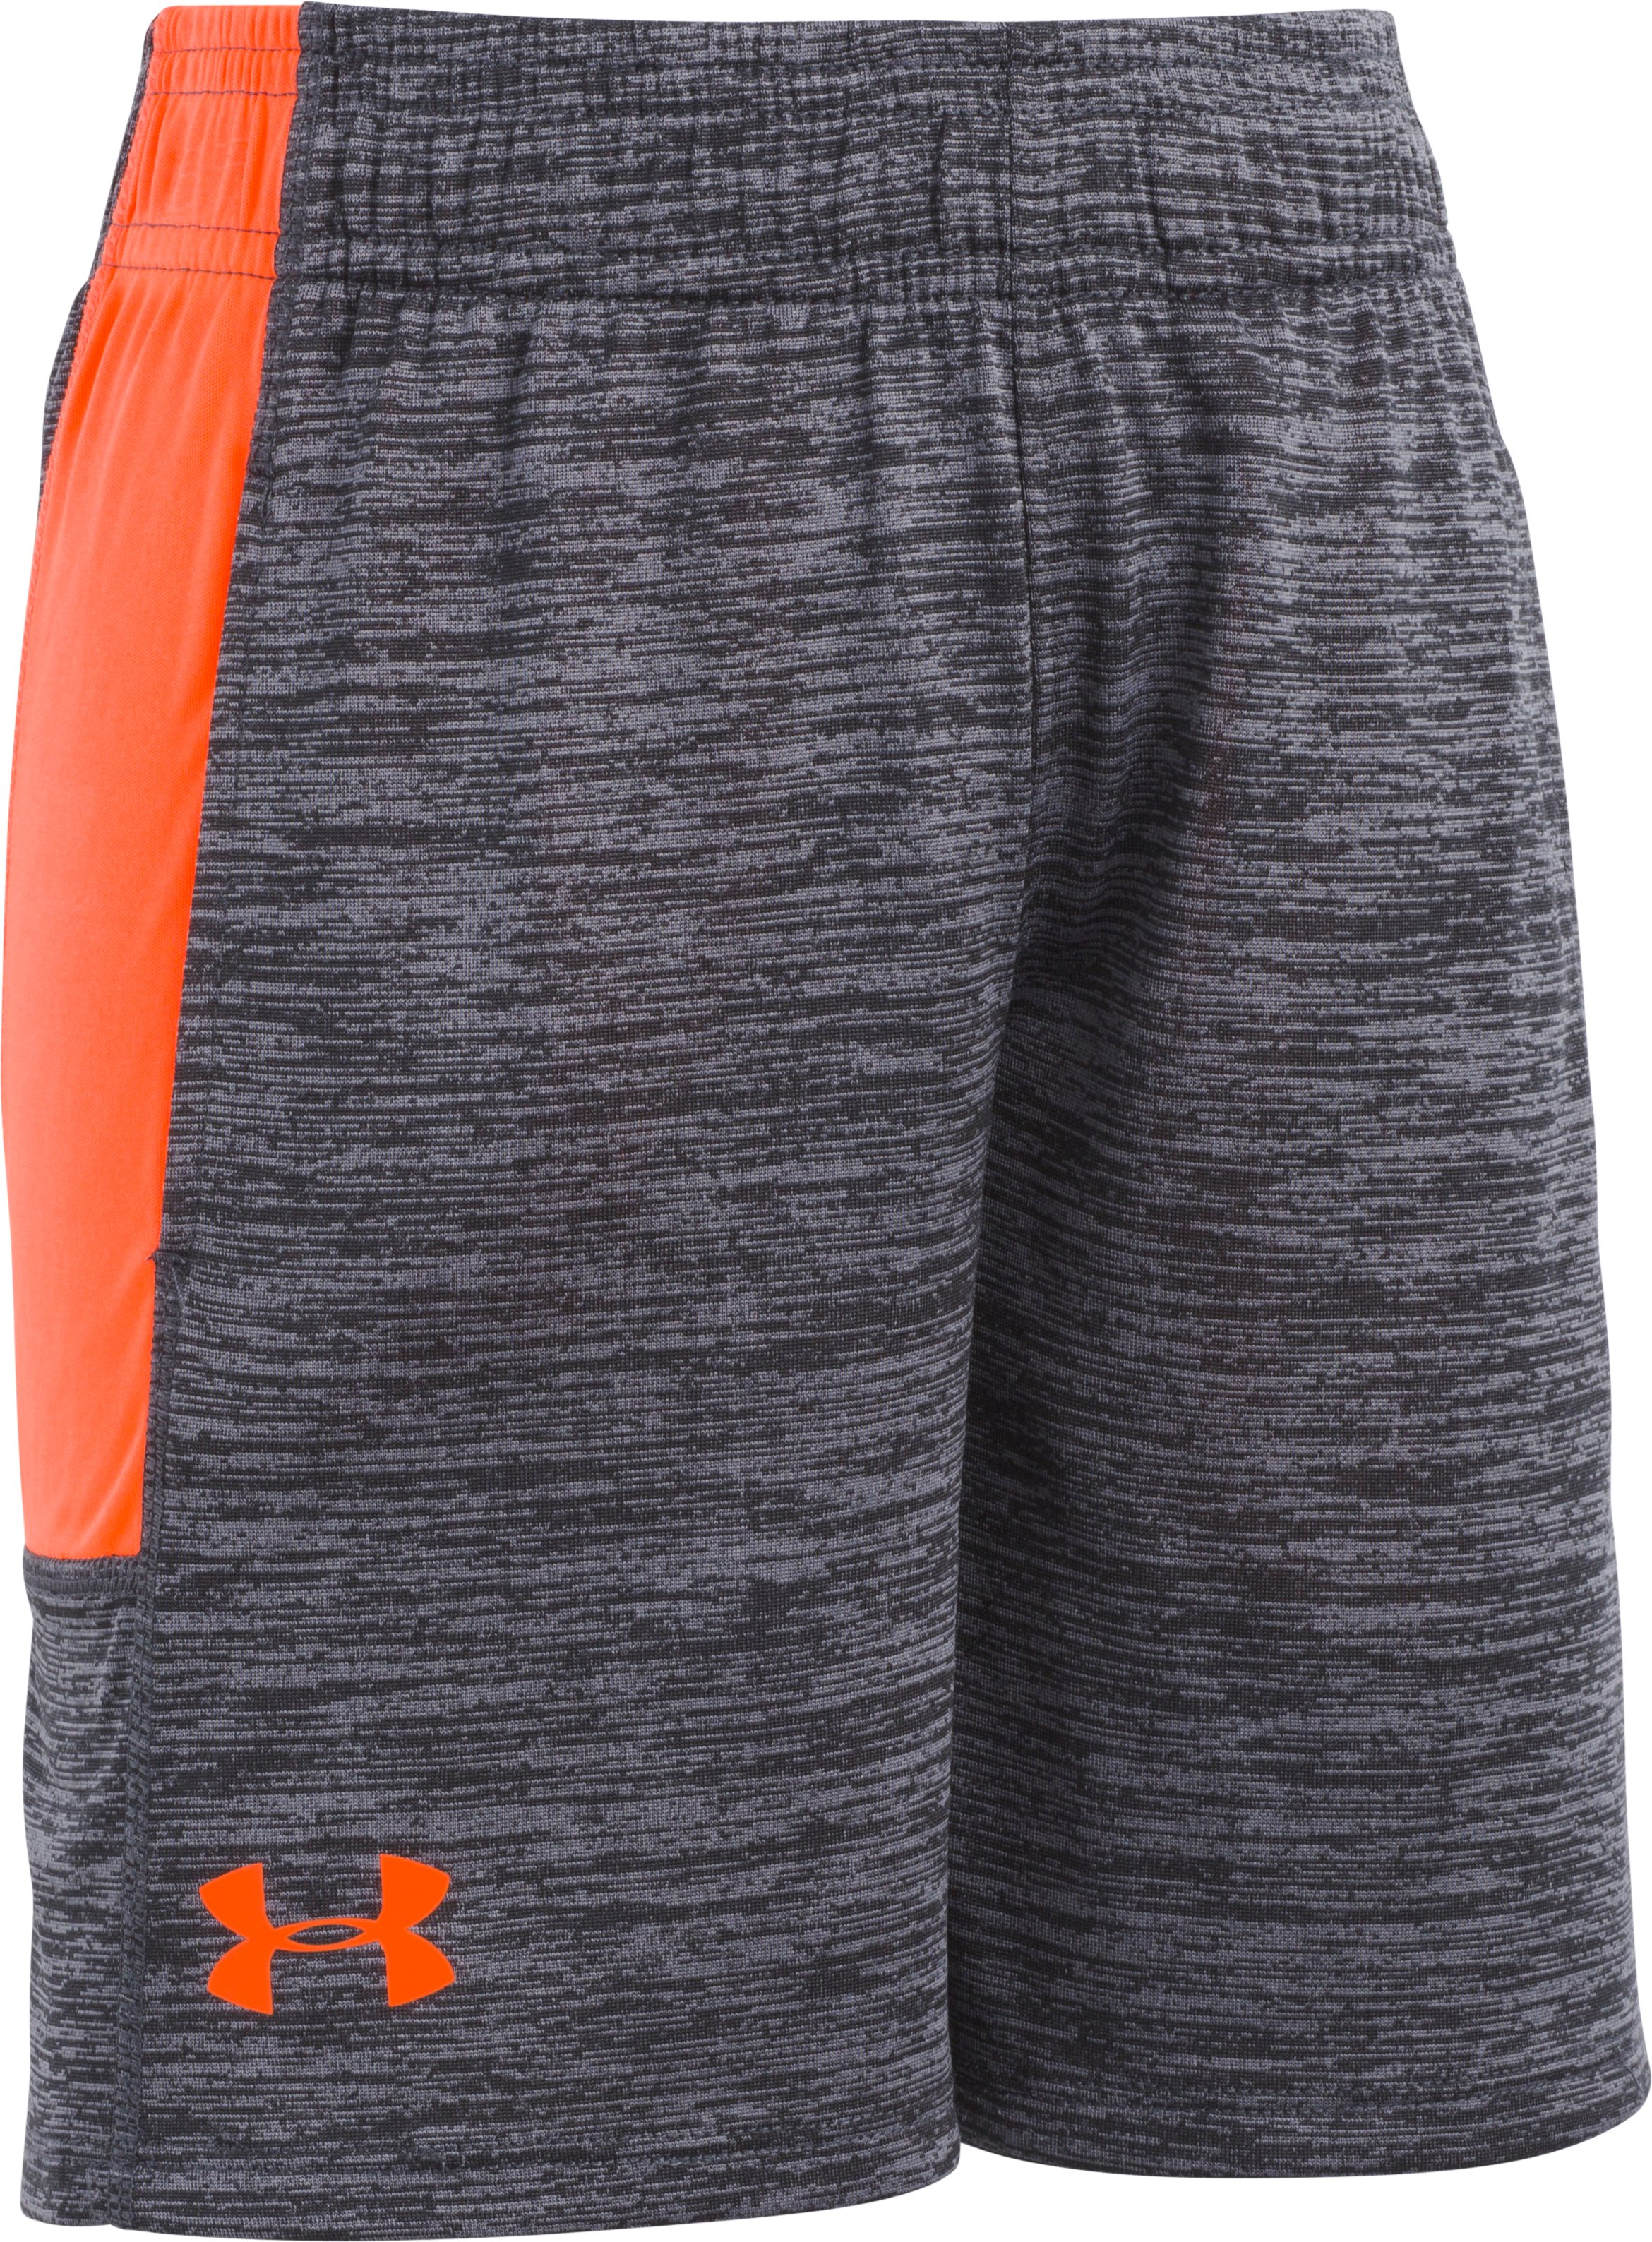 Boys' Pre-School UA Twist Stunt Shorts , ANTHRACITE, zoomed